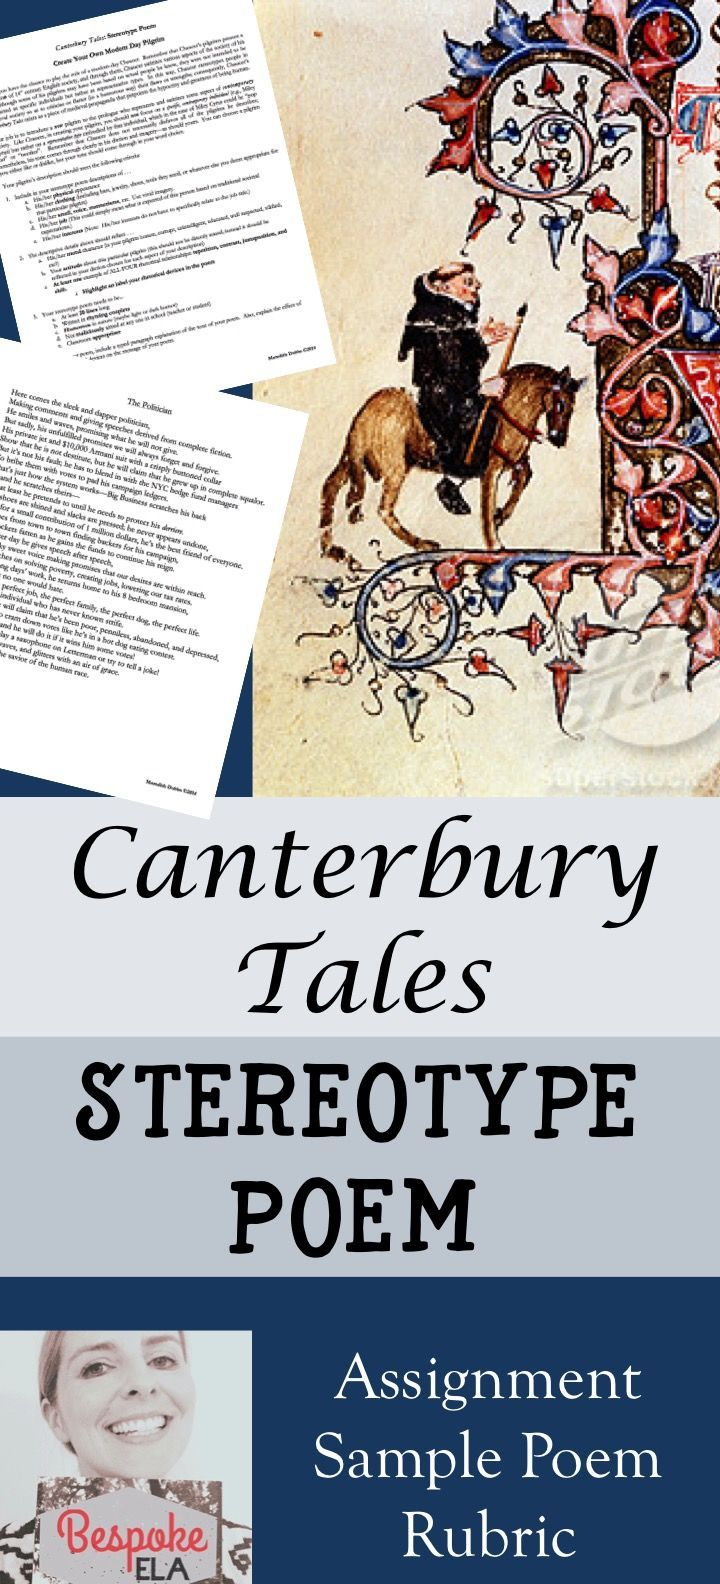 an essay on the canterbury tales and society Canterbury tales essaysthe canterbury tales by geoffrey chaucer is a poets and stories about gives modern readers a sense of the language at the time the book also gives a rich, intricate tapestry of medieval social life, combining elements of all classes, from nobles to workers, from priests and nu.